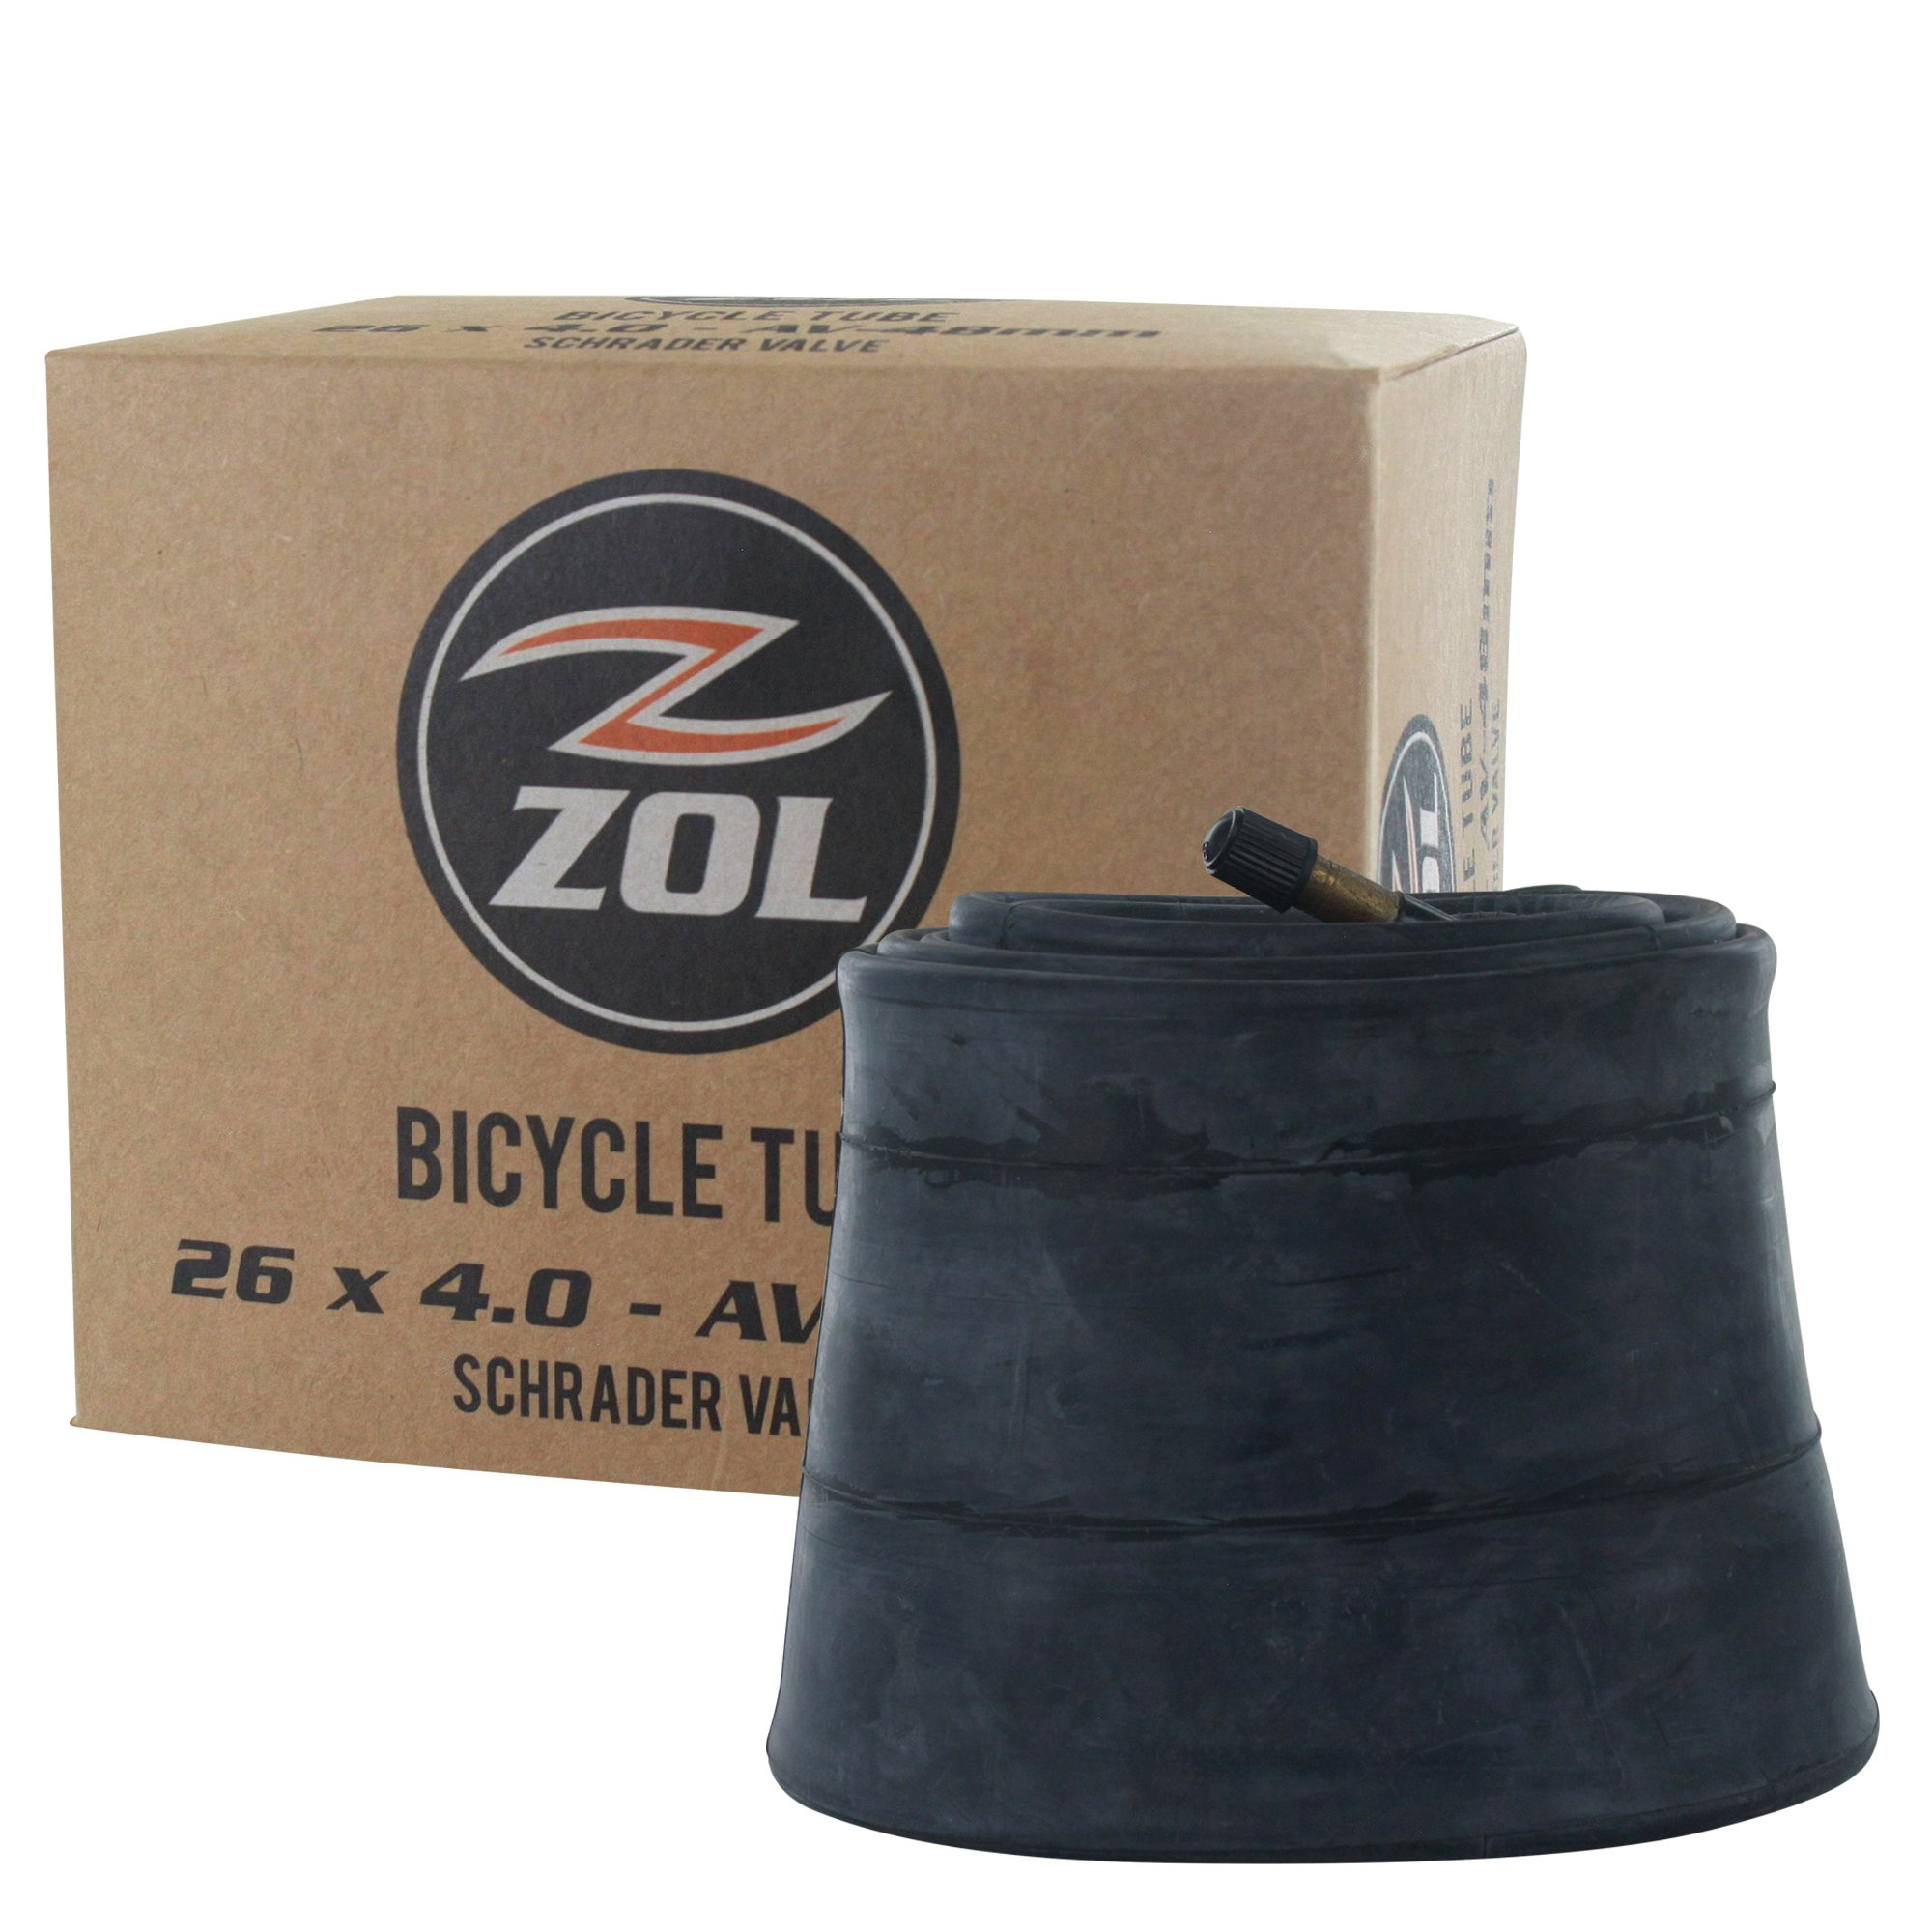 Zol MTB Fat Tire Bike Bicycle Inner Tube 26'' x 4.0 Schrader Valve 48mm(2 PCS) by Zol